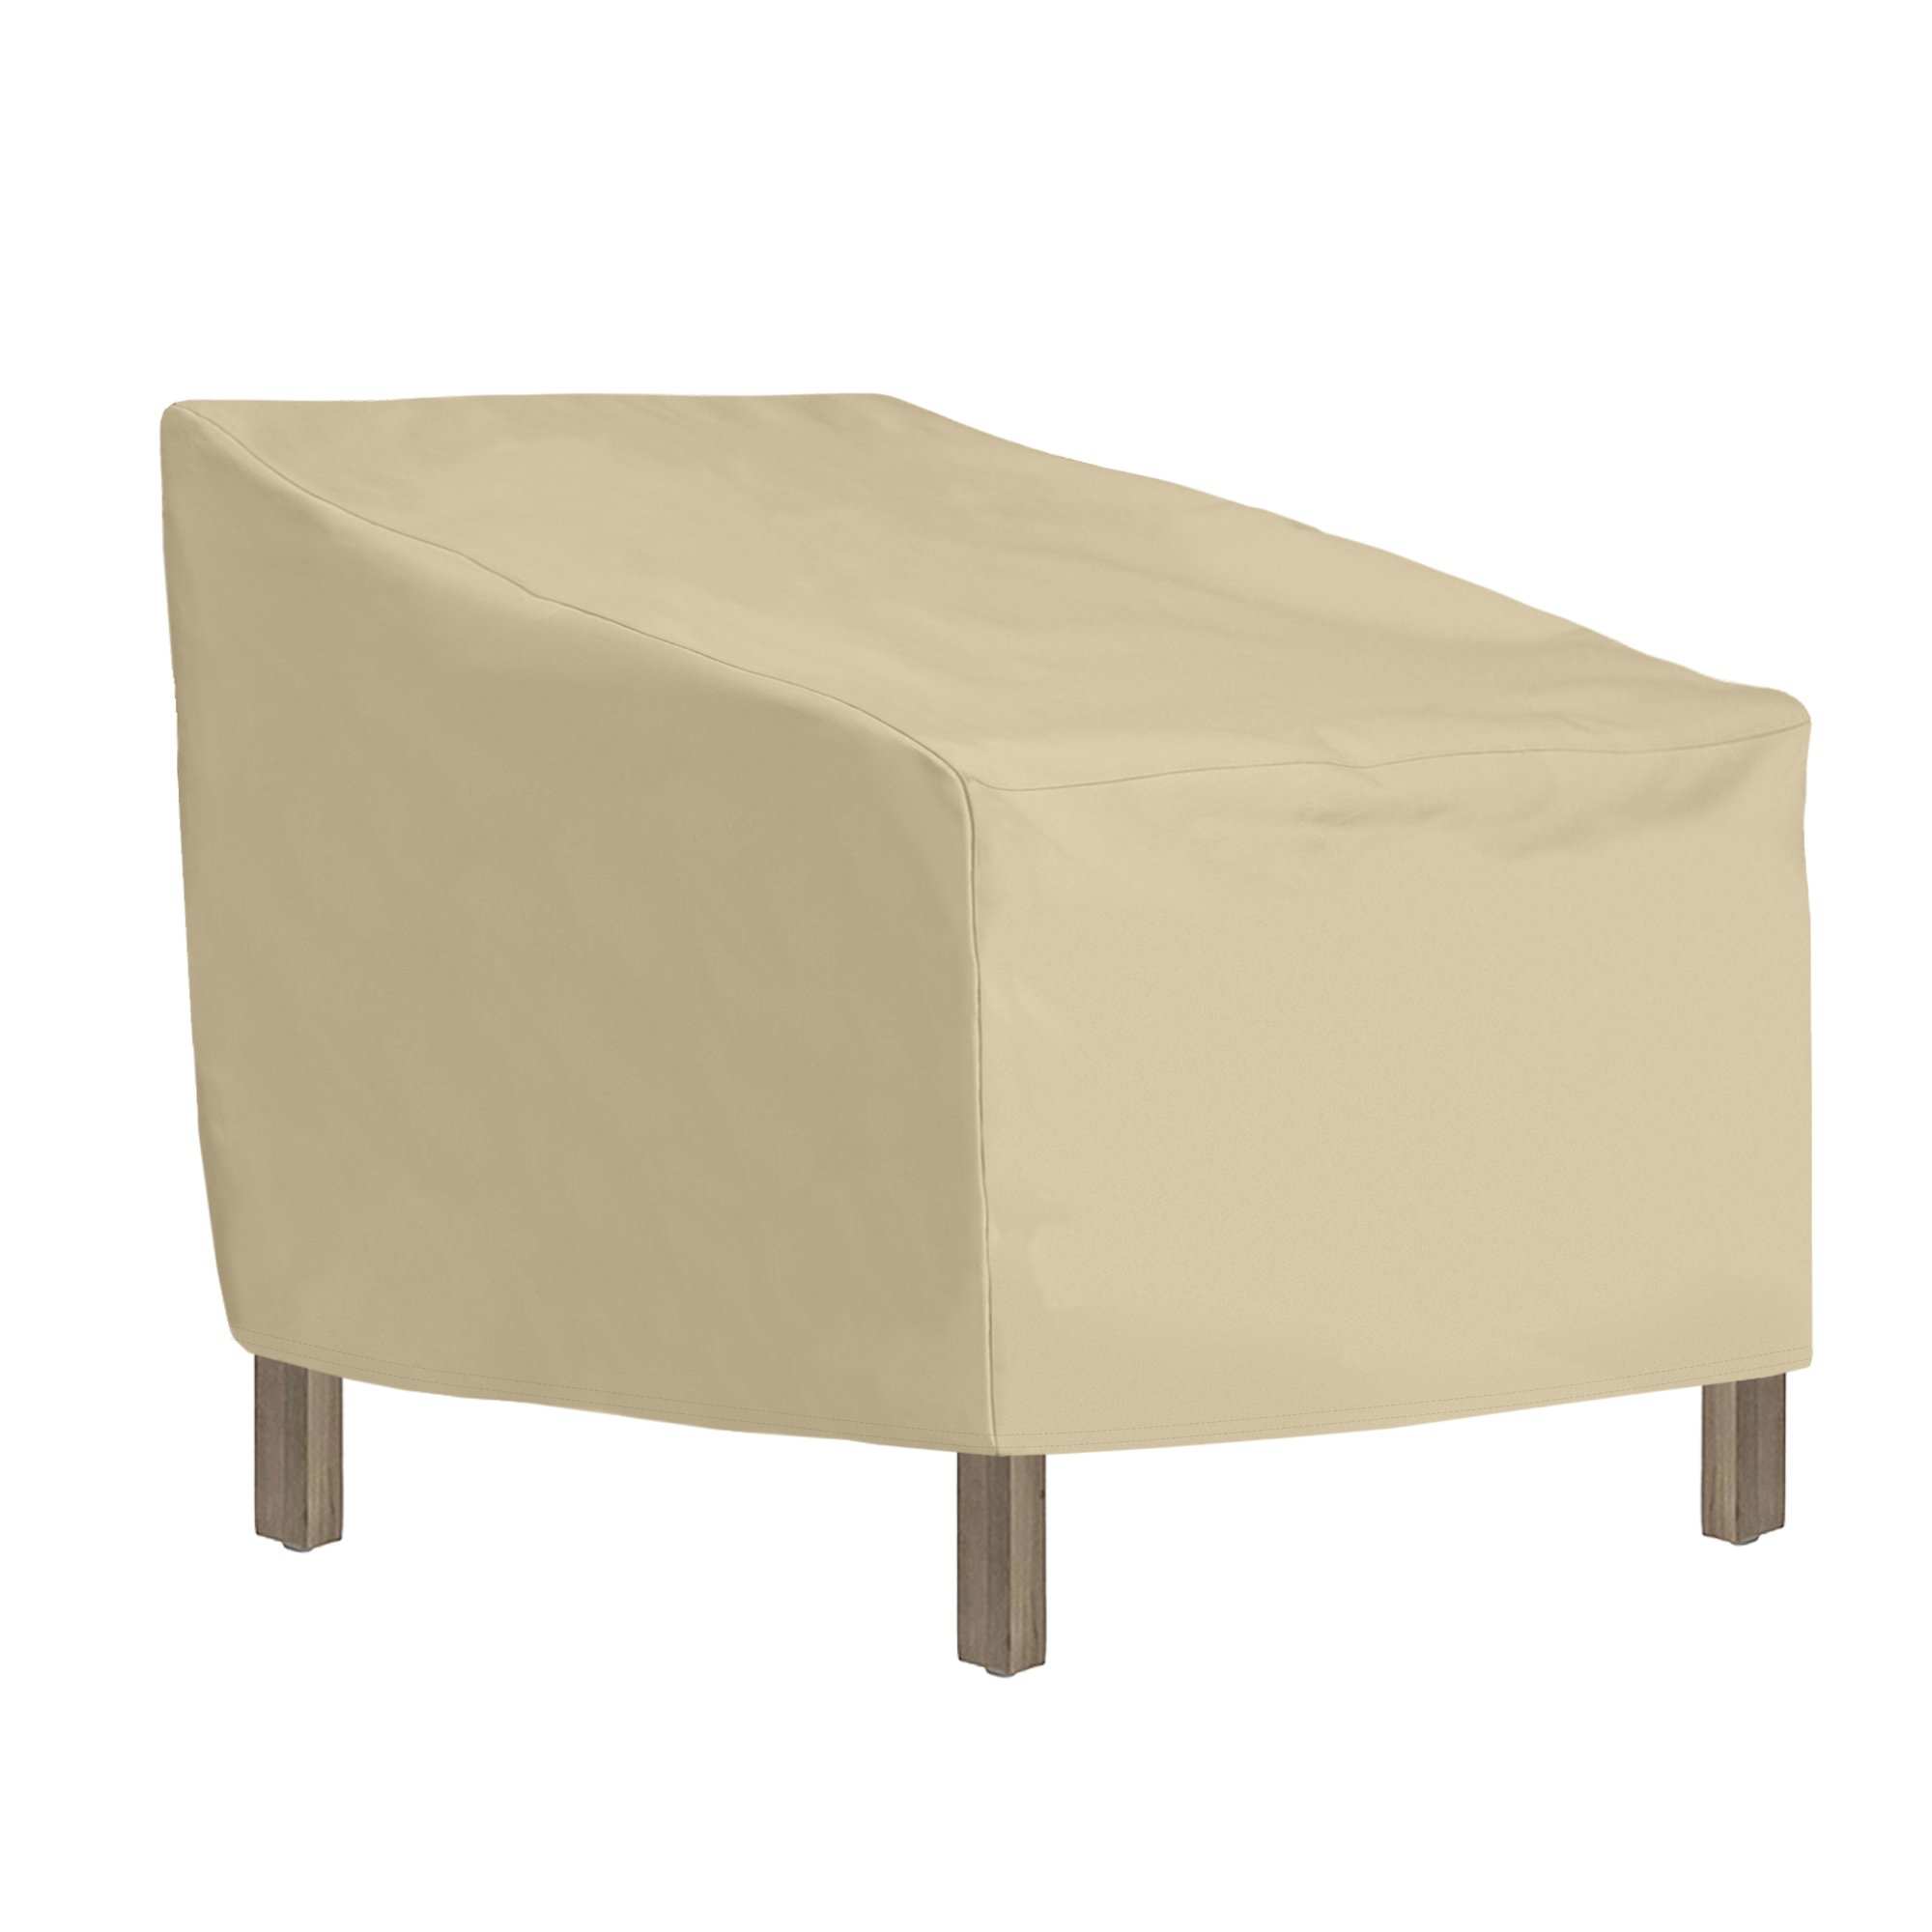 SunPatio Outdoor Lounge Chair Cover, Heavy Duty Waterproof Club Chair Cover, Patio Furniture Cover 34'' L x 37'' W x 36''/25''H, Durable and All Weather Protector, Beige